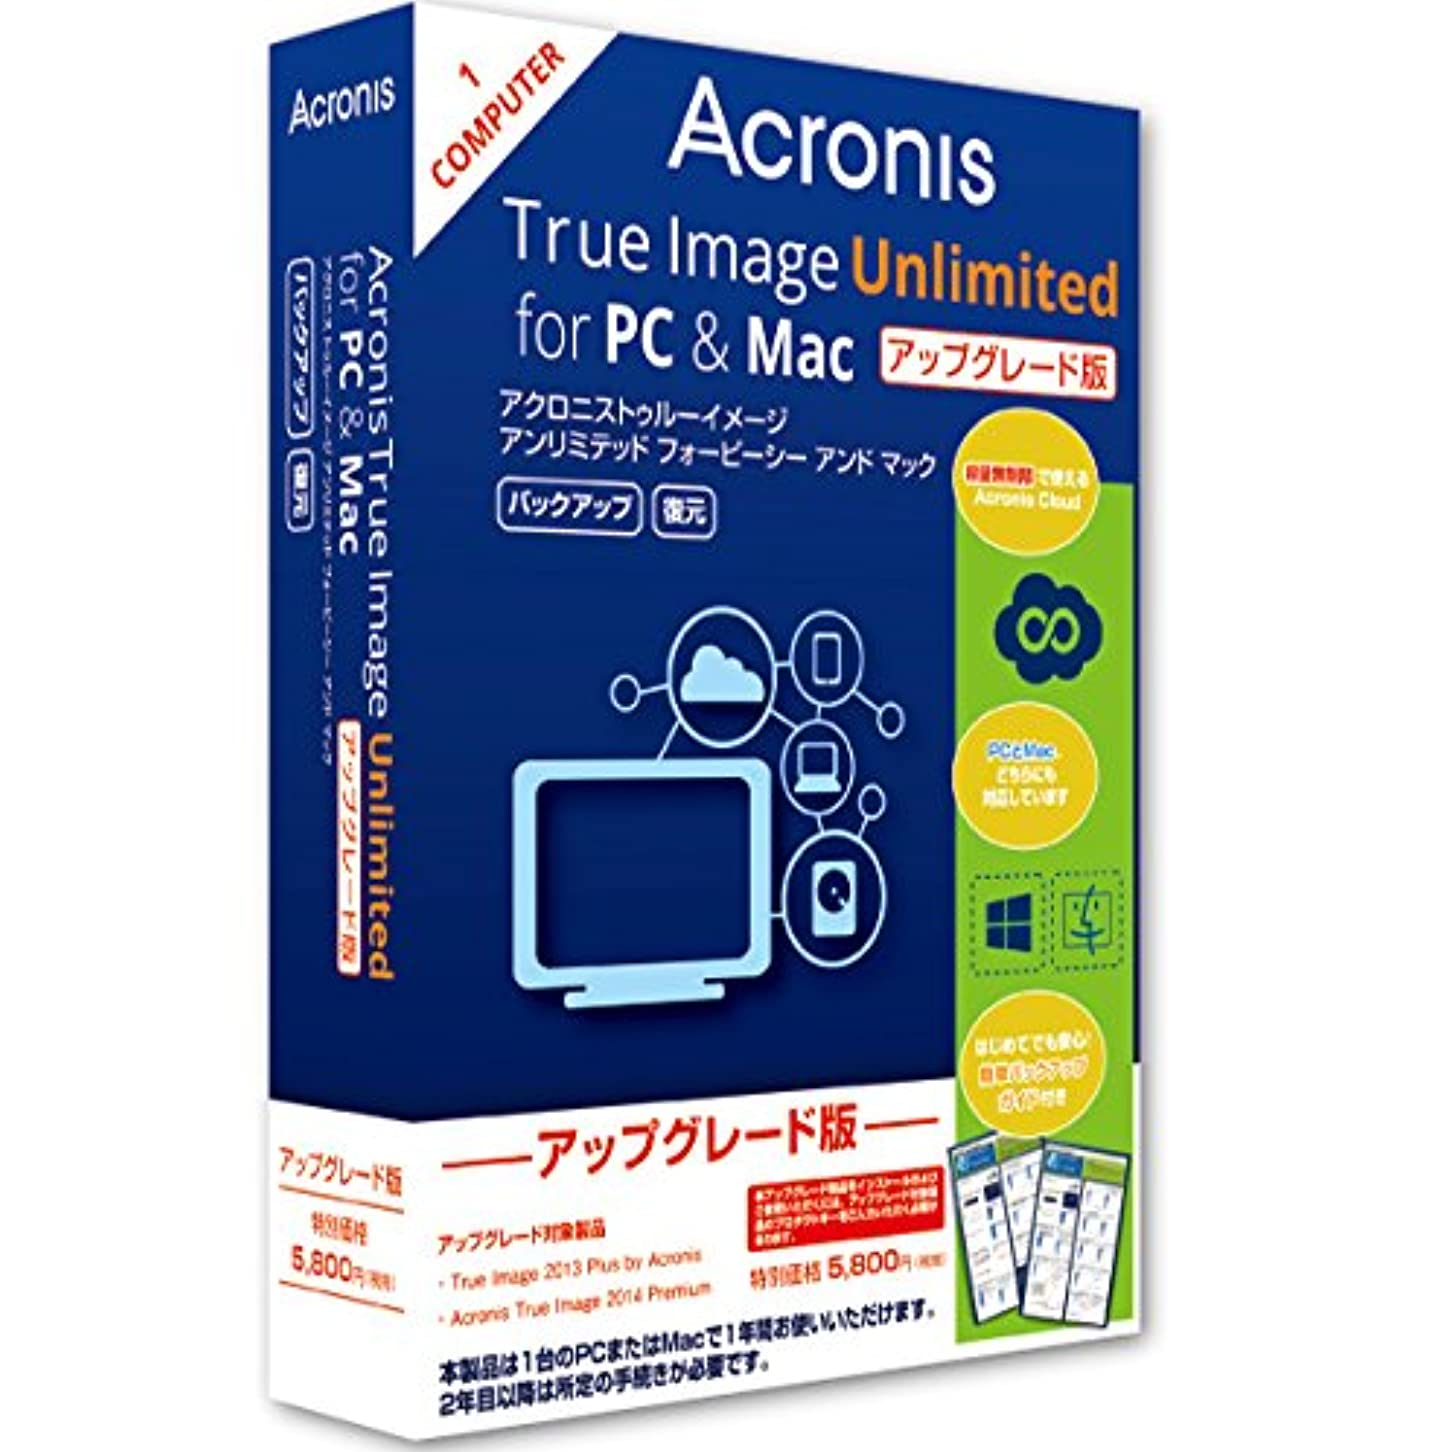 Acronis True Image Unlimited for PC and Mac 1 Computer - UPG from 2014 1 PC Premium